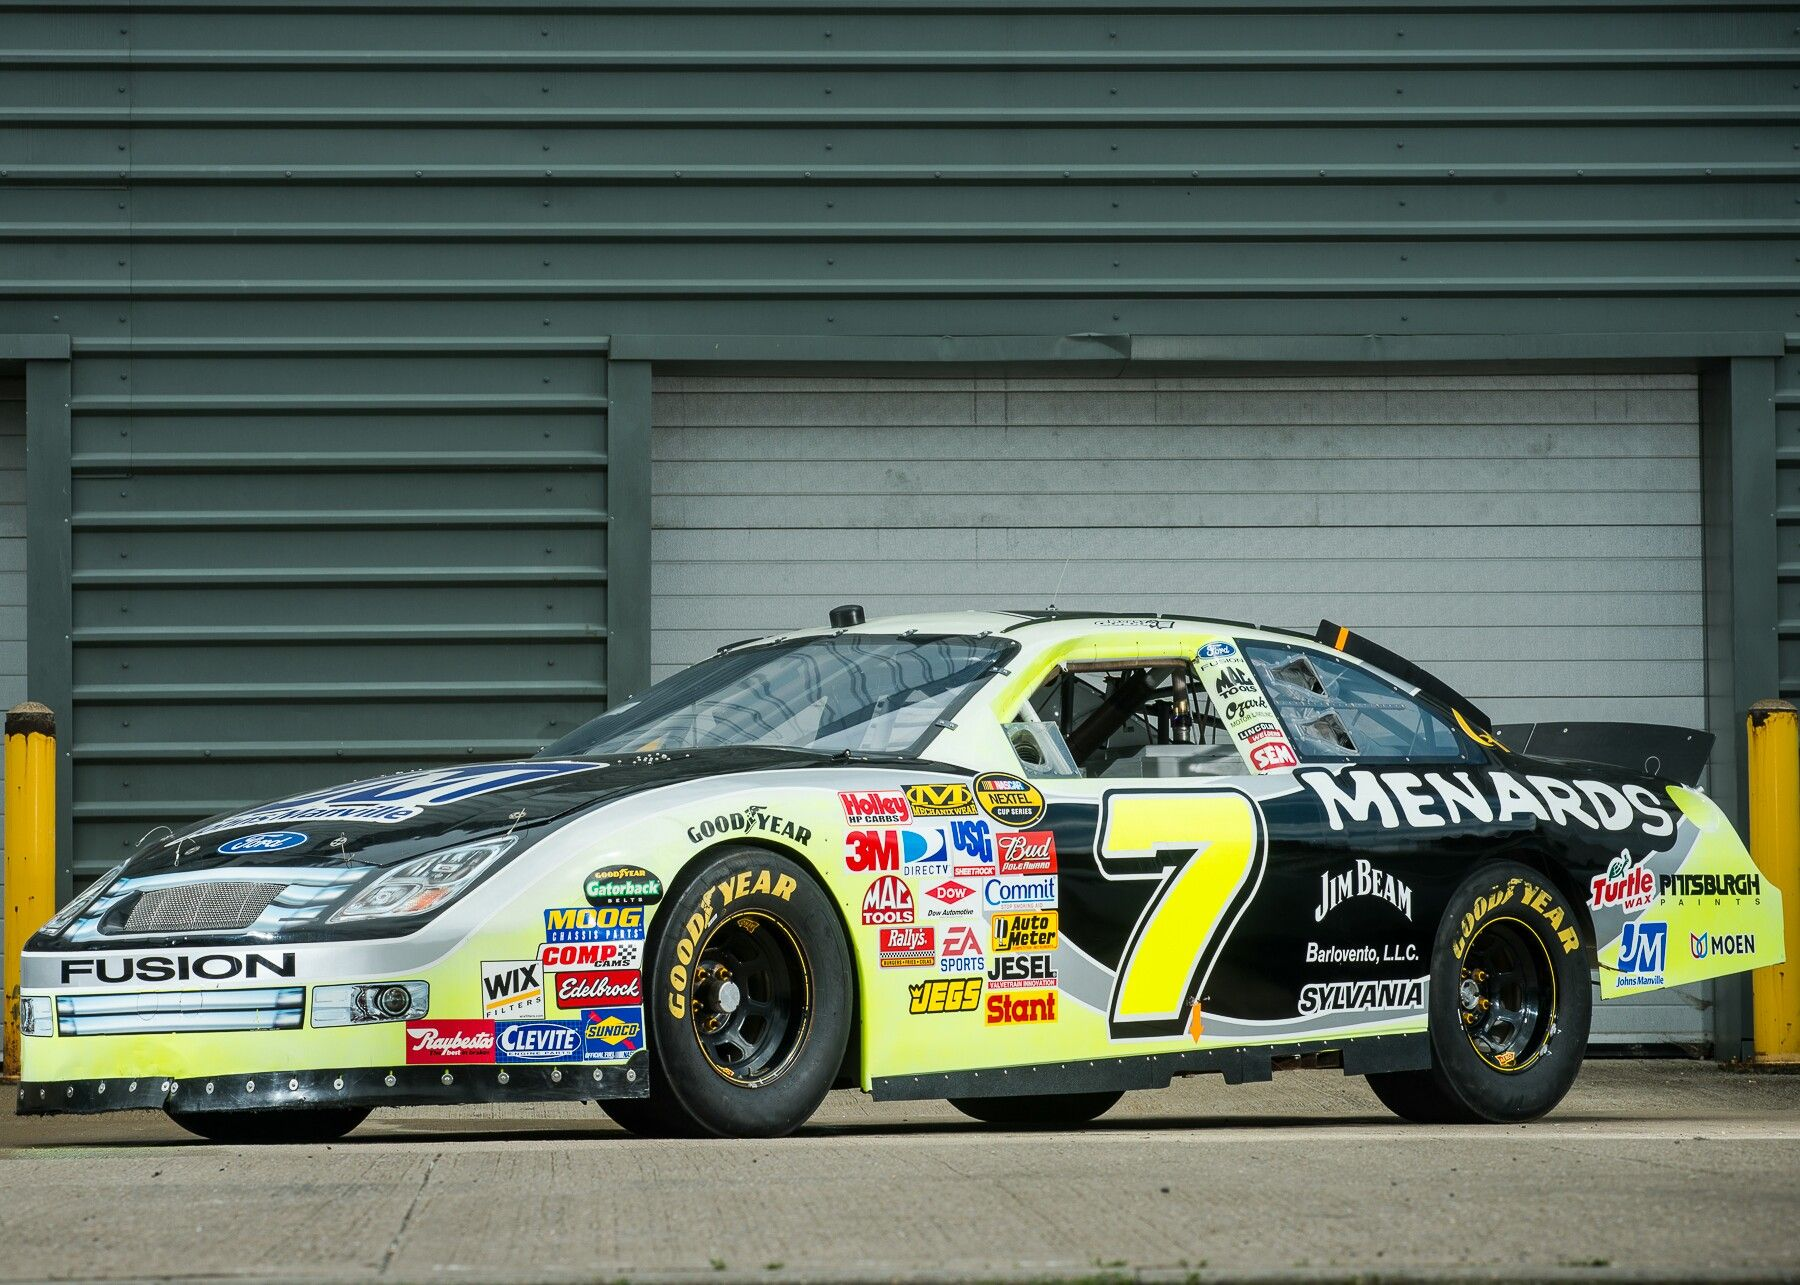 Pin By Guardrail On Racer Nascar Ford Fusion Nascar Cars